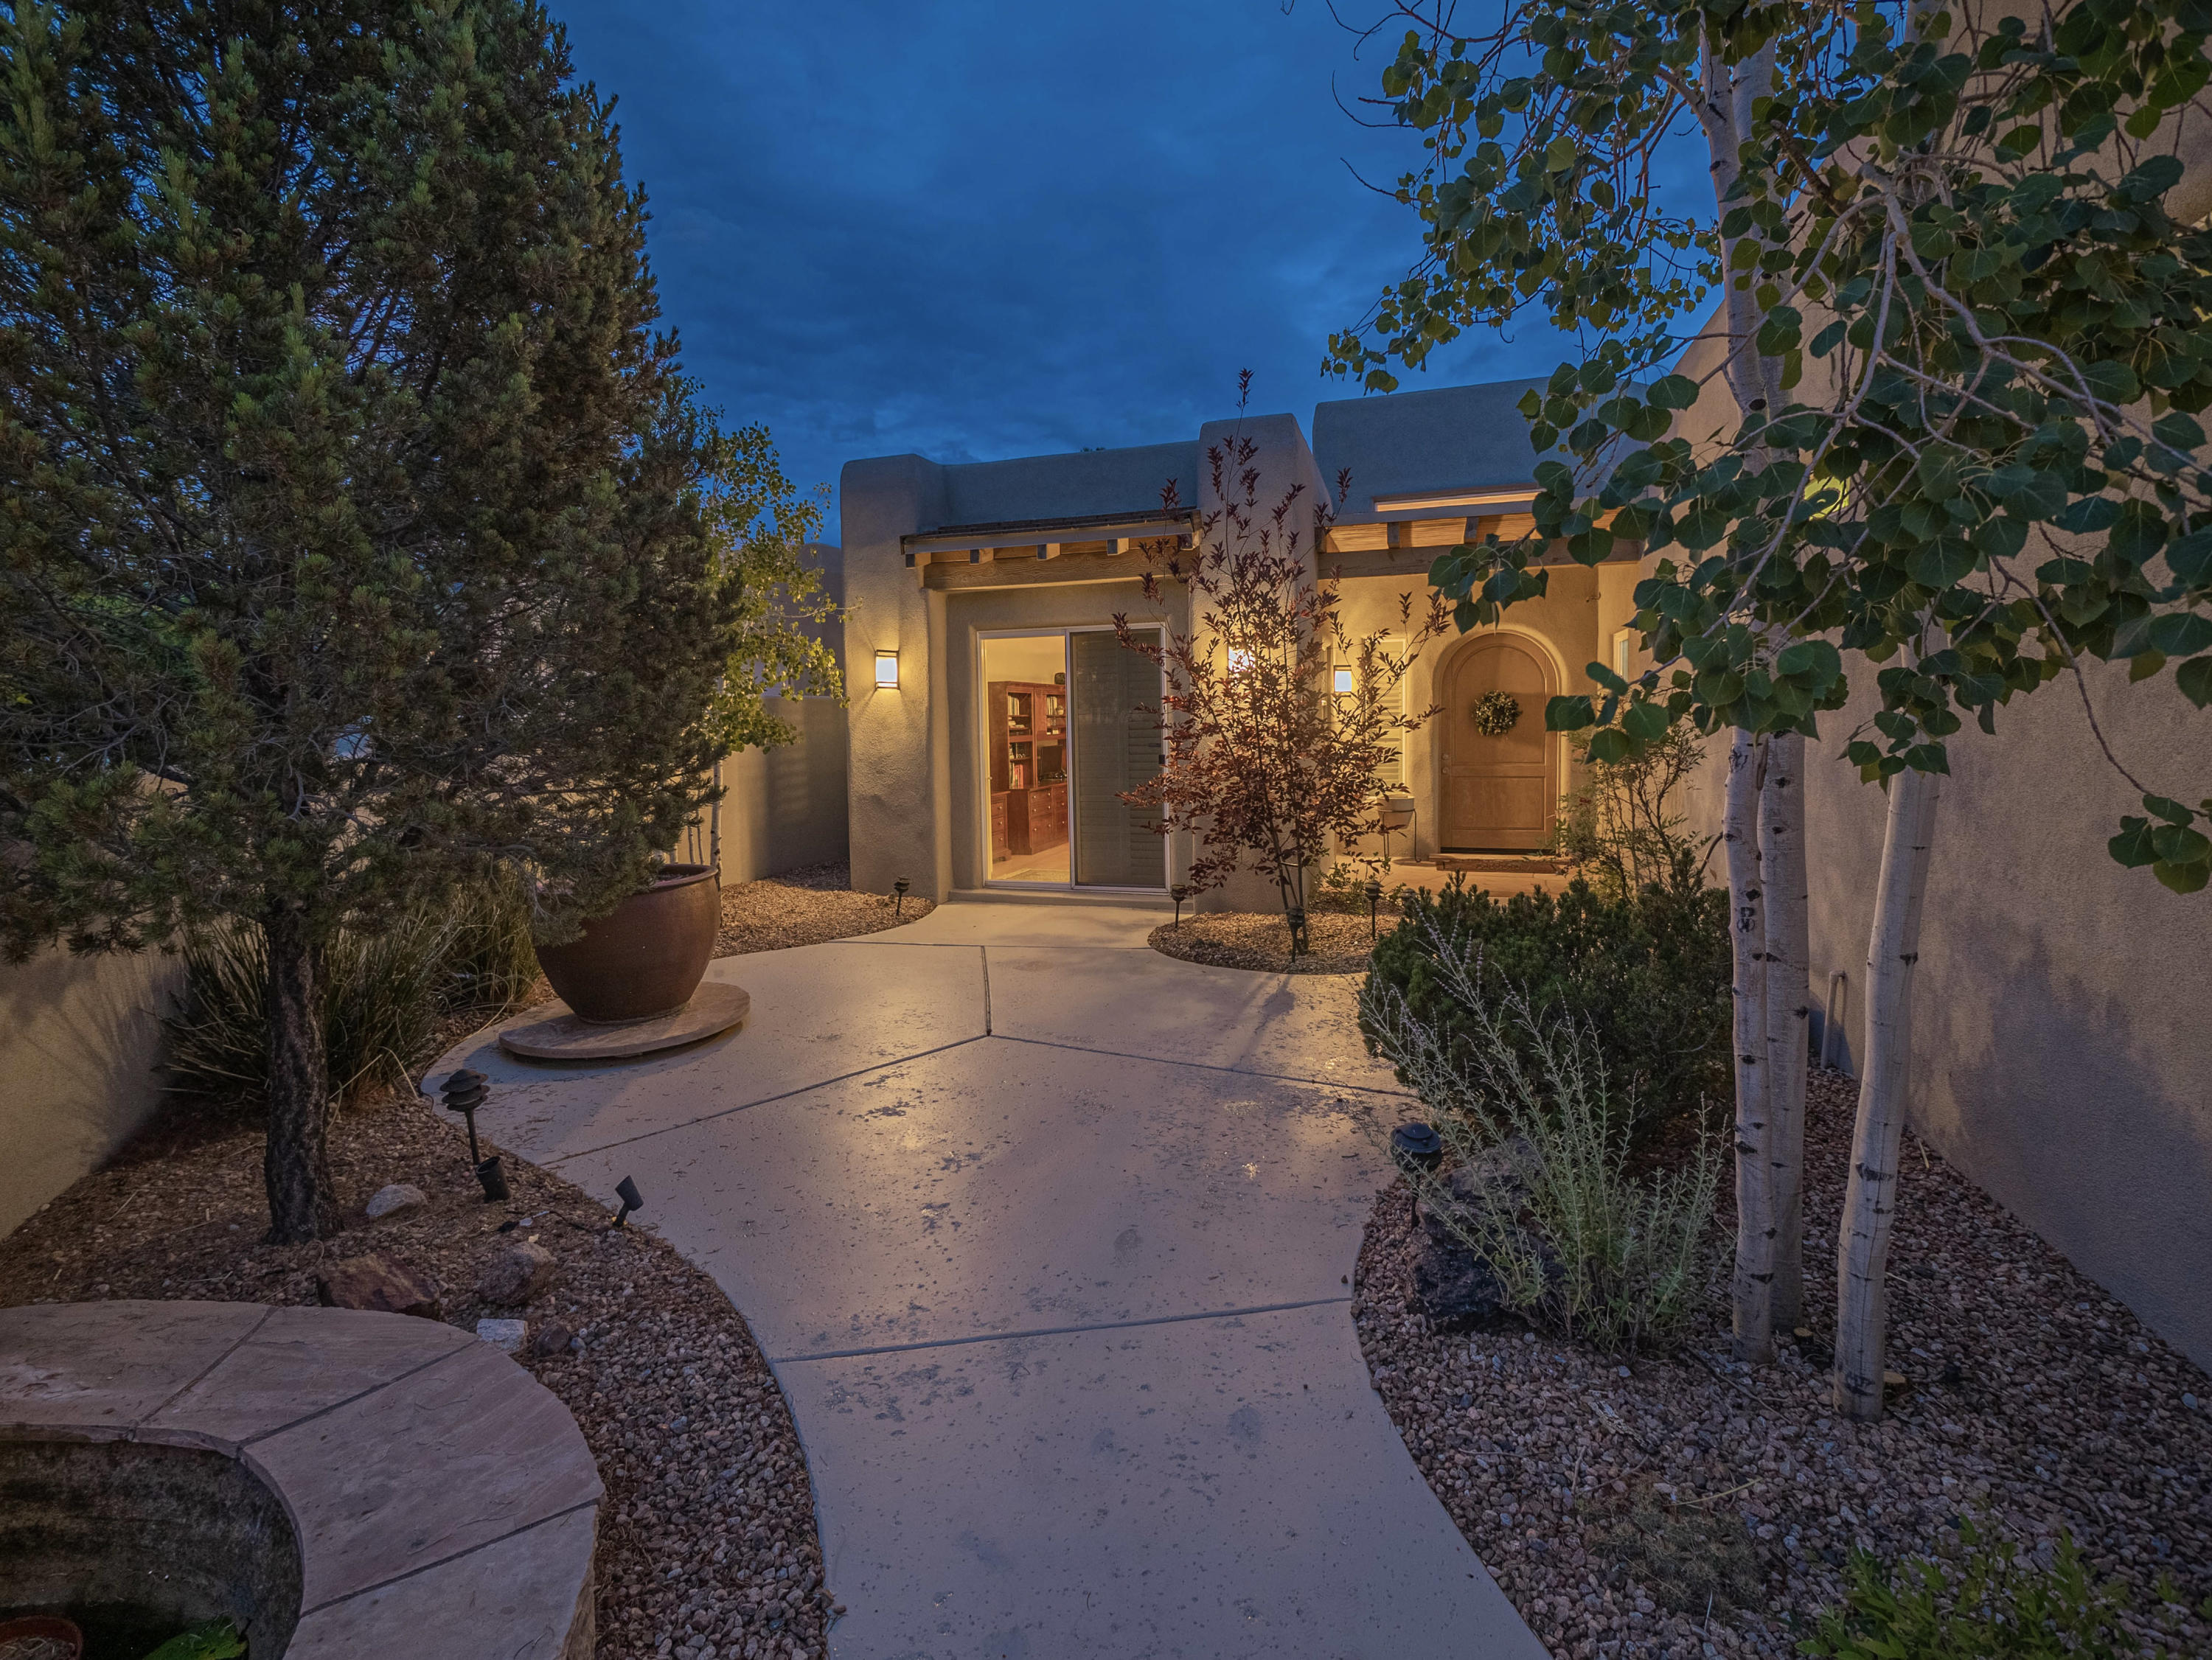 **Open House Sunday, 7/25 from 1pm-3pm***HIGH DESERT LIVING AT IT'S FINEST!! Open the gate to the private courtyard with soothing cascading water fountain and enter through the custom hand carved front door. Once you cross over the threshold the WOW FACTOR transcends throughout this impeccably kept home. The original owner wasthe builder himself (Starbright Custom Homes) and you can certainly tell with the extra attention to detail in every room. This 3-bedroom single level Contemporary Southwest style home offers incredible features to include a stacked stone waterfall upon entry, large great room with GORGEOUS MOUNTAINVIEWS and beeswax fireplace, absolutely amazing kitchen with cherry wood cabinets and floating drawers.